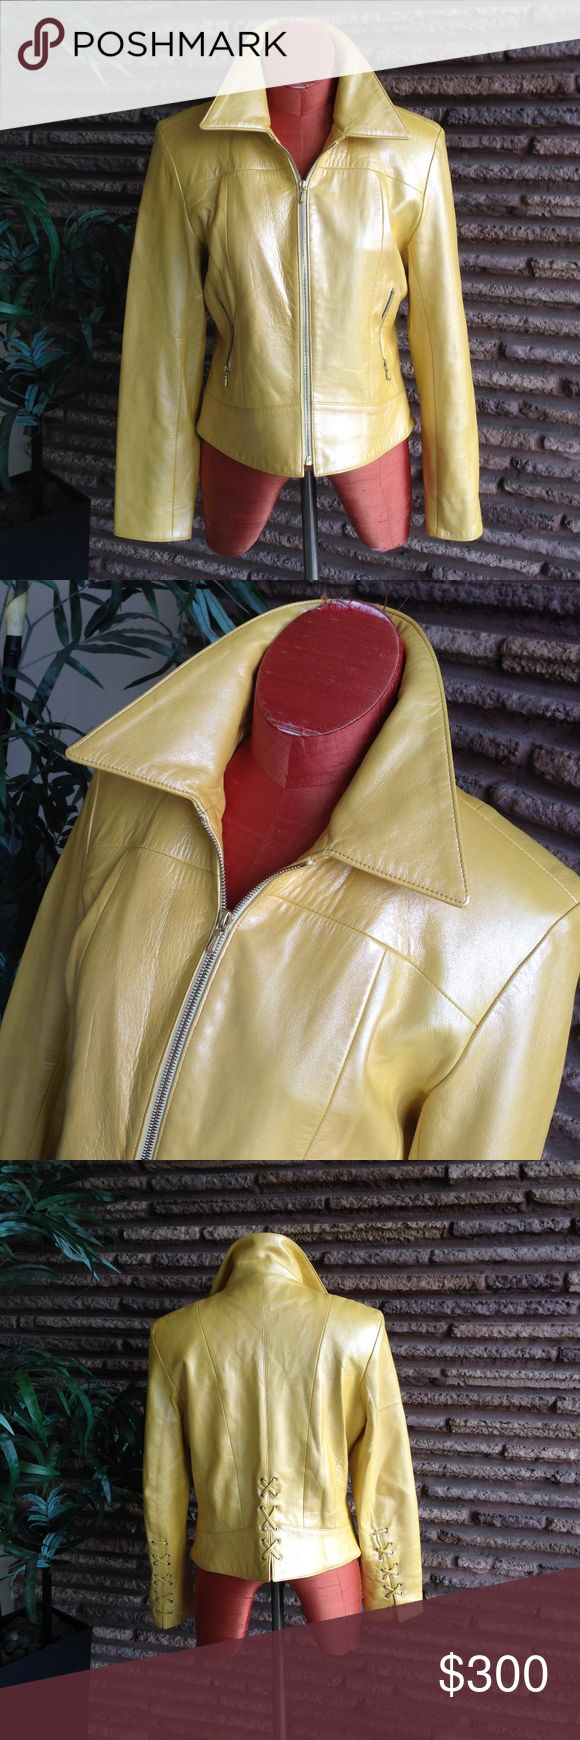 """Vintage Glove Soft Metallic Yellow Moto Jacket Fabulous fitted motorcycle styled jacket in a metallic golden yellow. This is from a boutique shop in San Francisco known for their quality leather goods. The leather is glove soft. Braided detail on the back as well as the cuffs  Maker: West Coast Leather Fabric: 100% Lambskin Listed Size:10 Measurements: Shoulder to shoulder : 17.5""""  Armpit to armpit:  20.5"""" Sleeve: 24.5"""" Length: 21.375""""  Condition:    A couple of marks on the cuff on one…"""